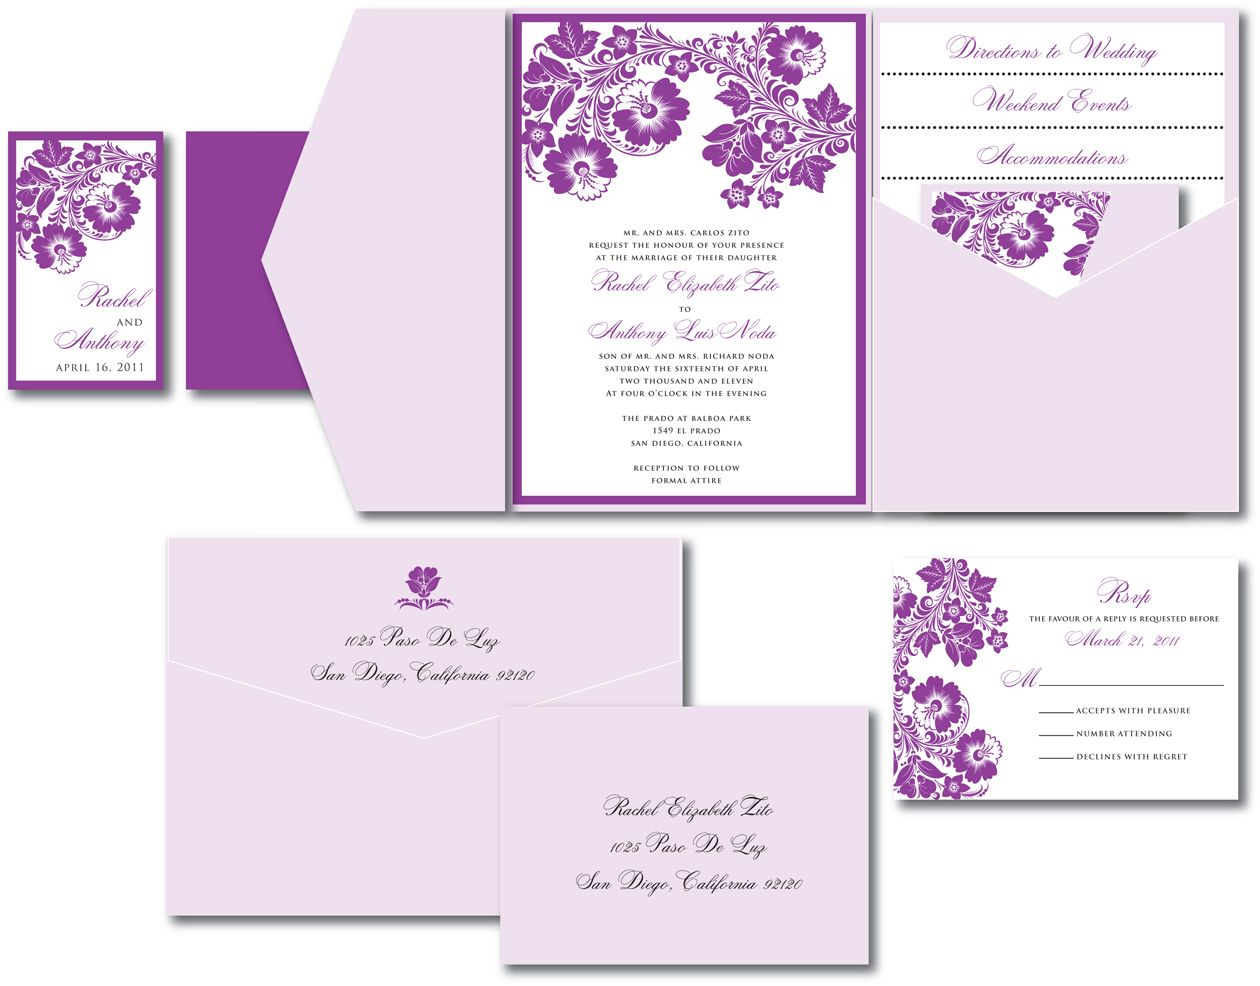 Purple And Lilac Wedding Invitations Lavender Invitation With Fl Accents January 13